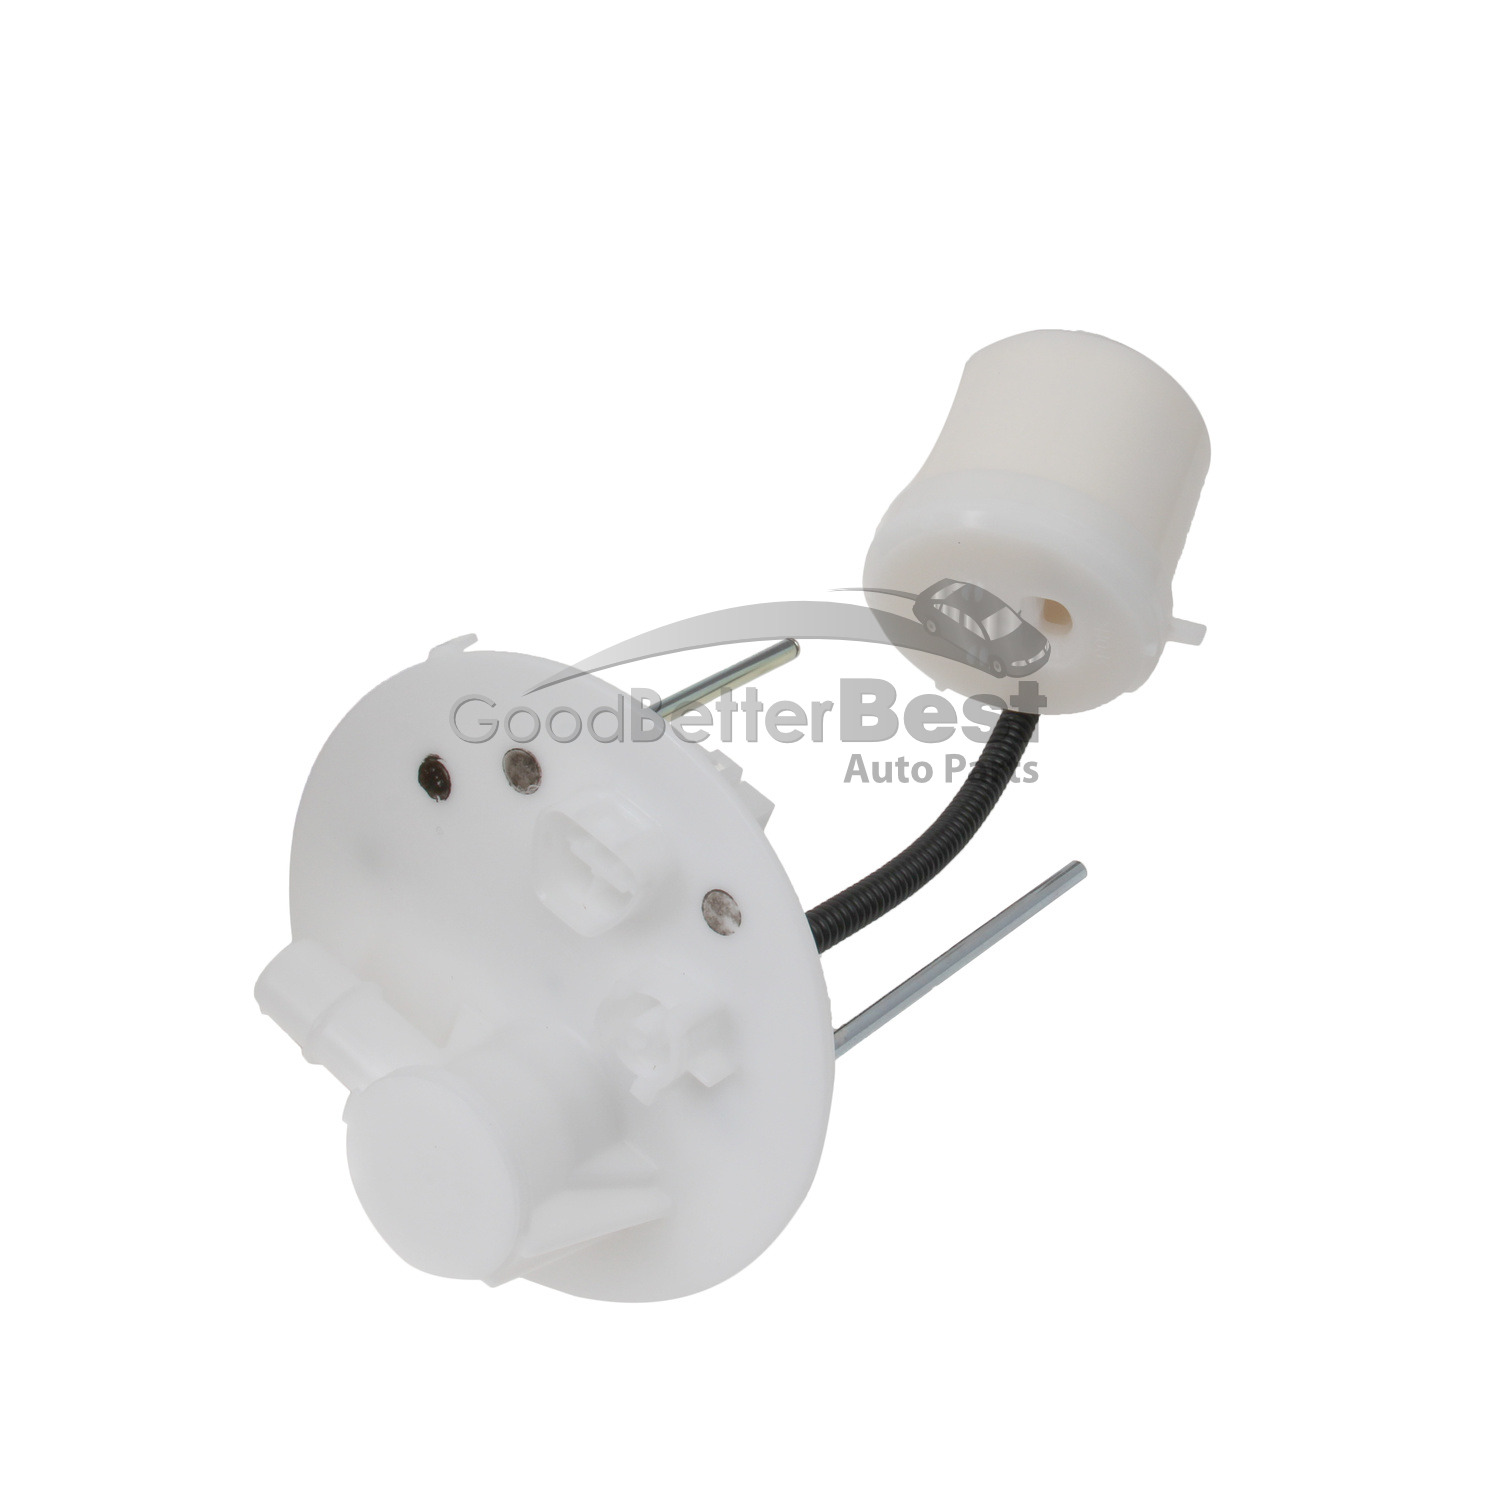 hight resolution of one new genuine fuel filter 7702402180 for toyota corolla